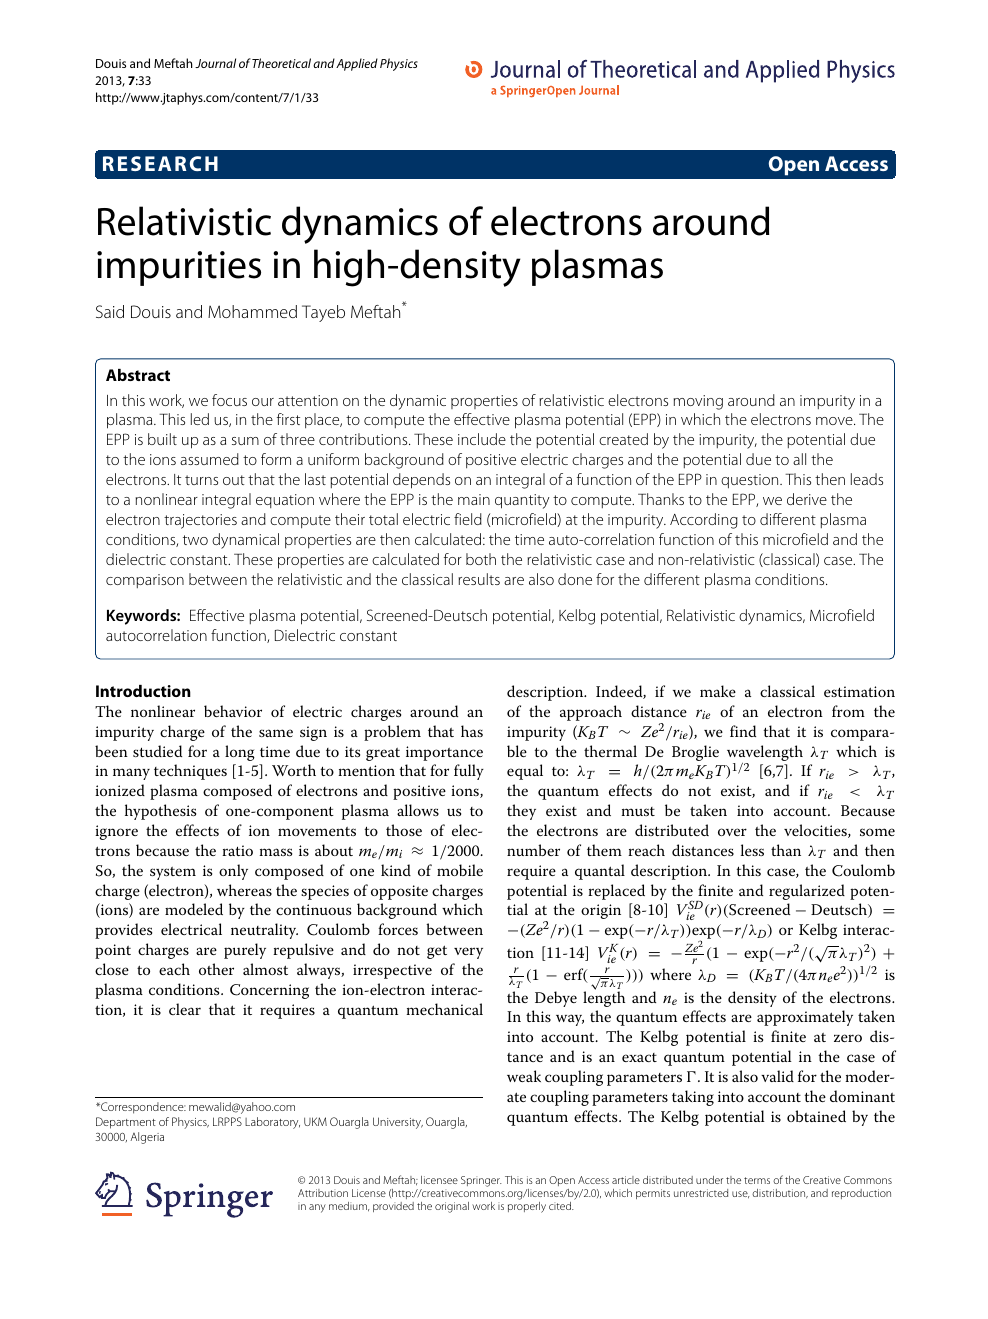 Relativistic dynamics of electrons around impurities in high